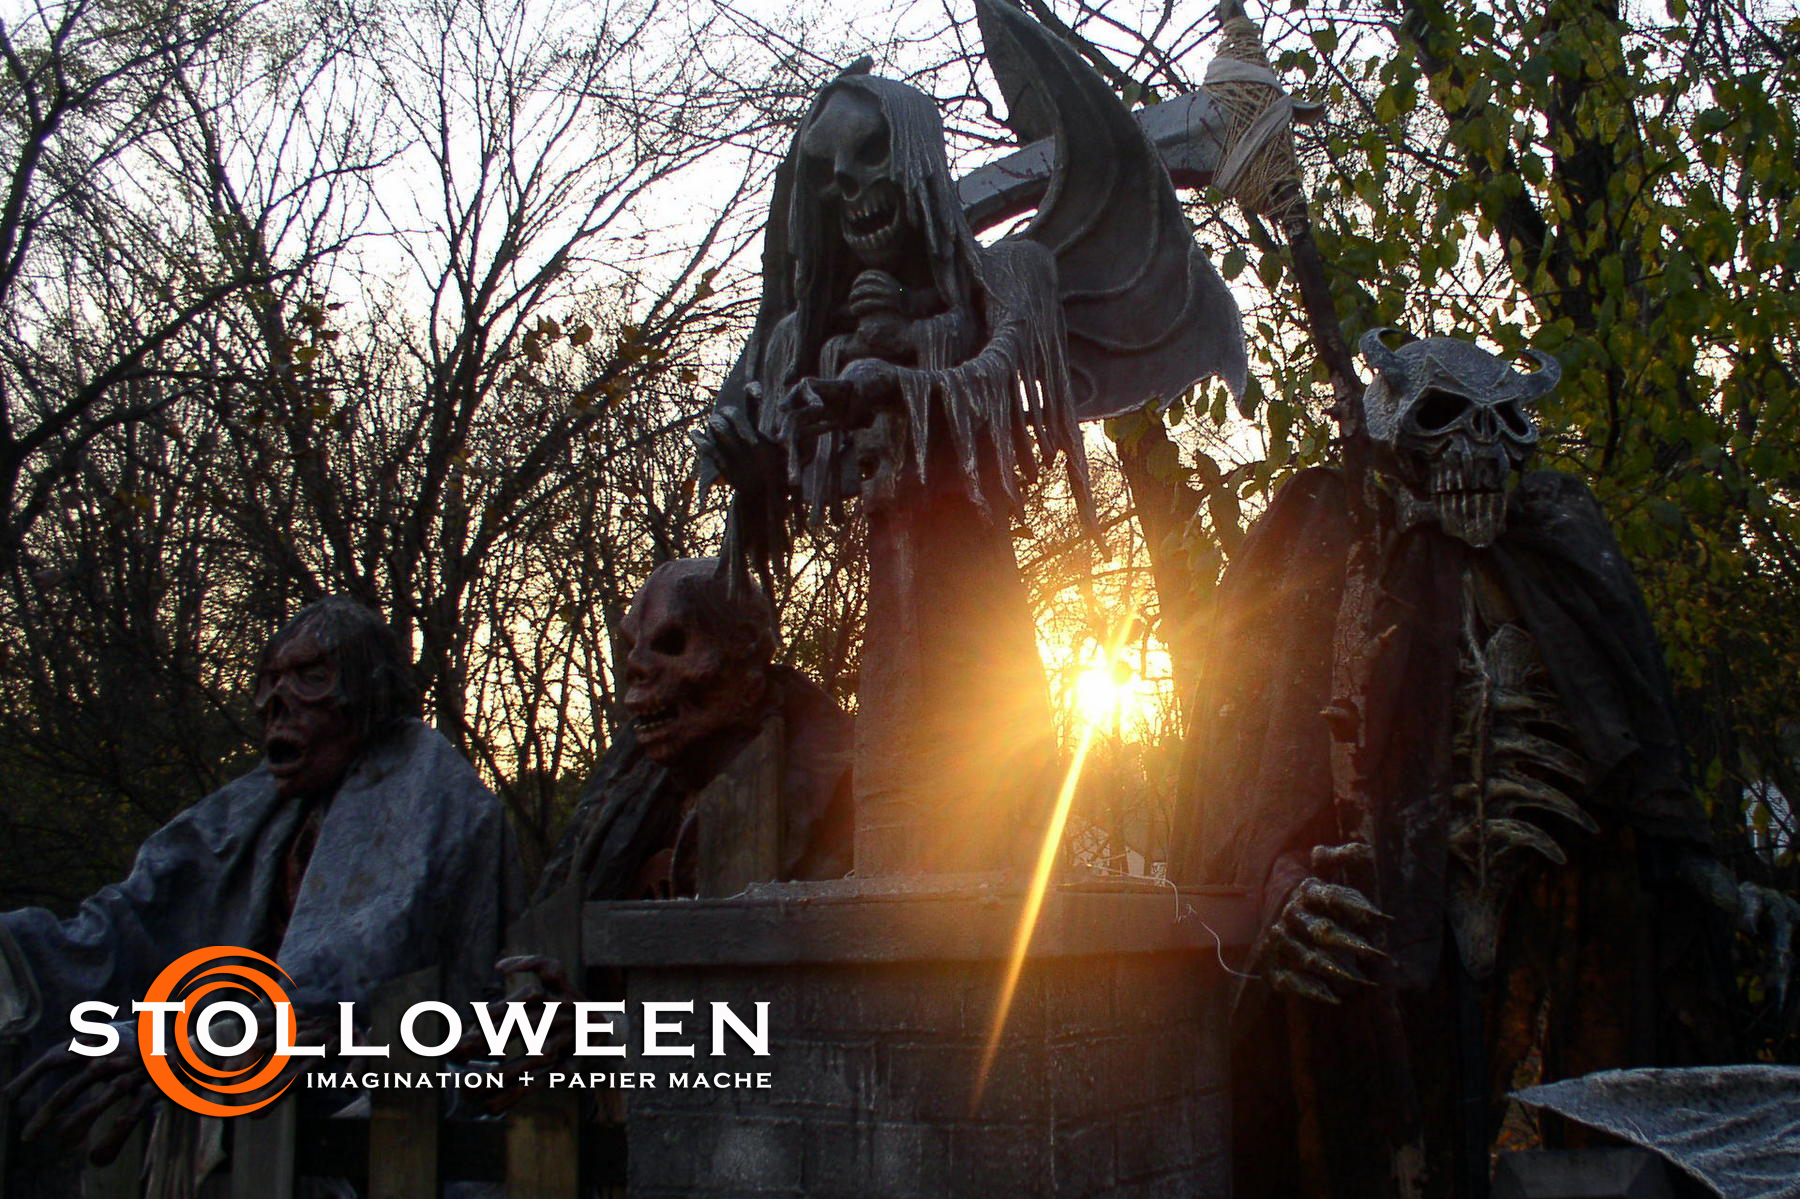 STOLLOWEEN PHOTOGRAPHS (27)